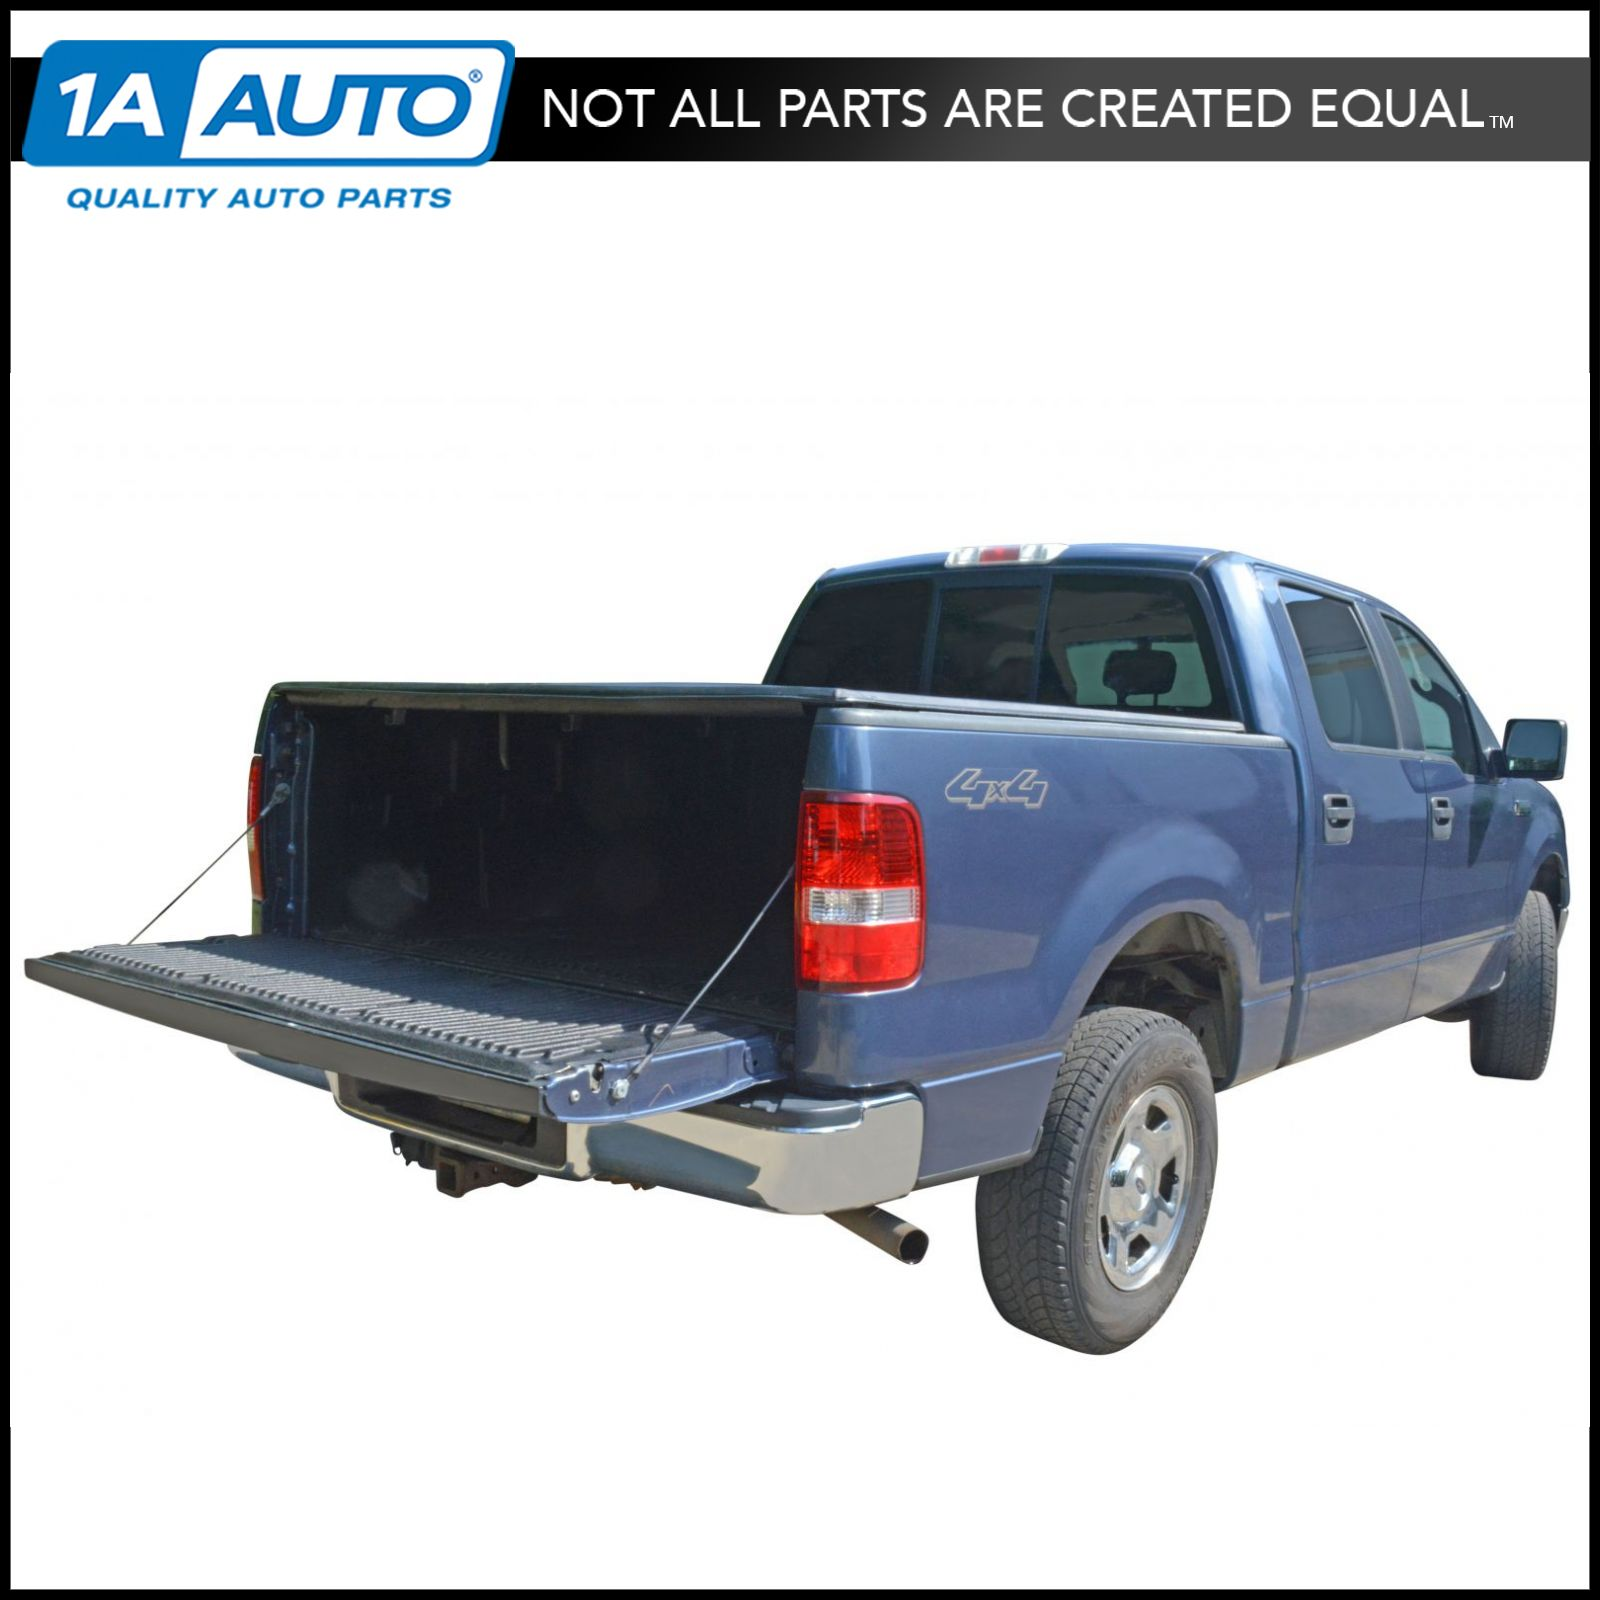 Auto Parts And Vehicles Truck Bed Accessories Tonneau Cover Hidden Snap For Ford F150 Pickup Truck Crew Cab 5 5ft Bed